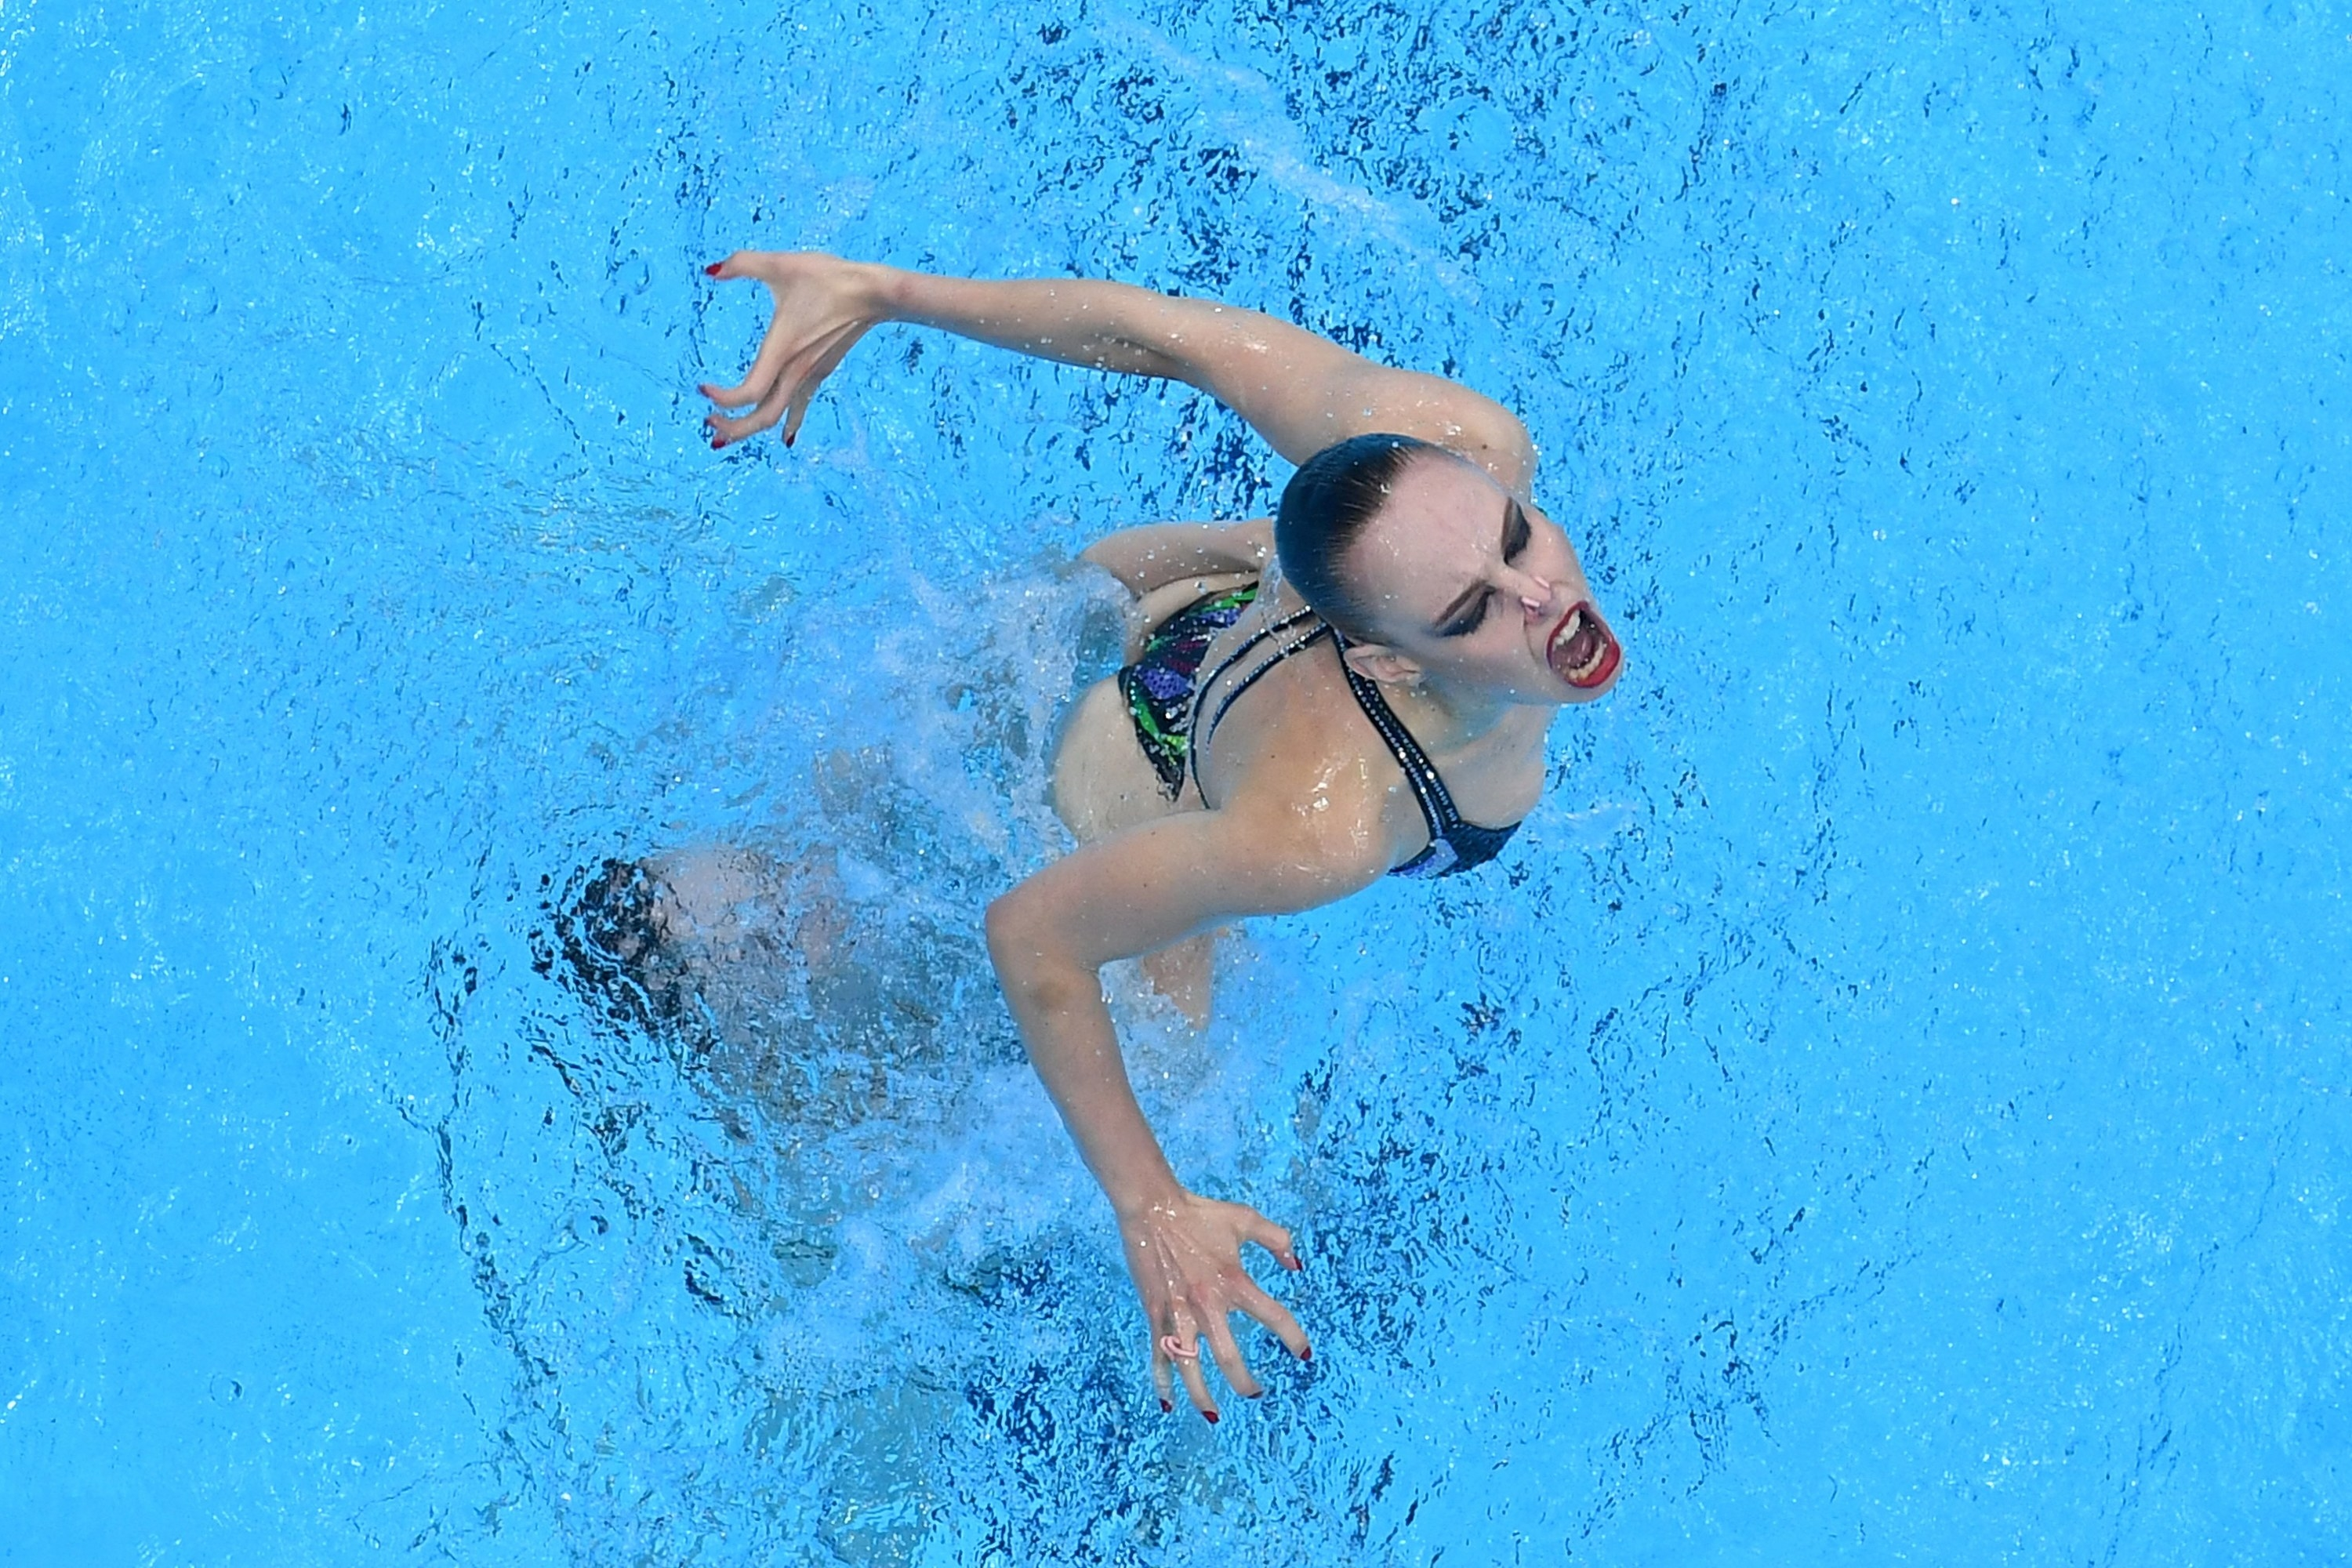 An overhead view of a woman swimmer holding her head above water at the Tokyo Olympics